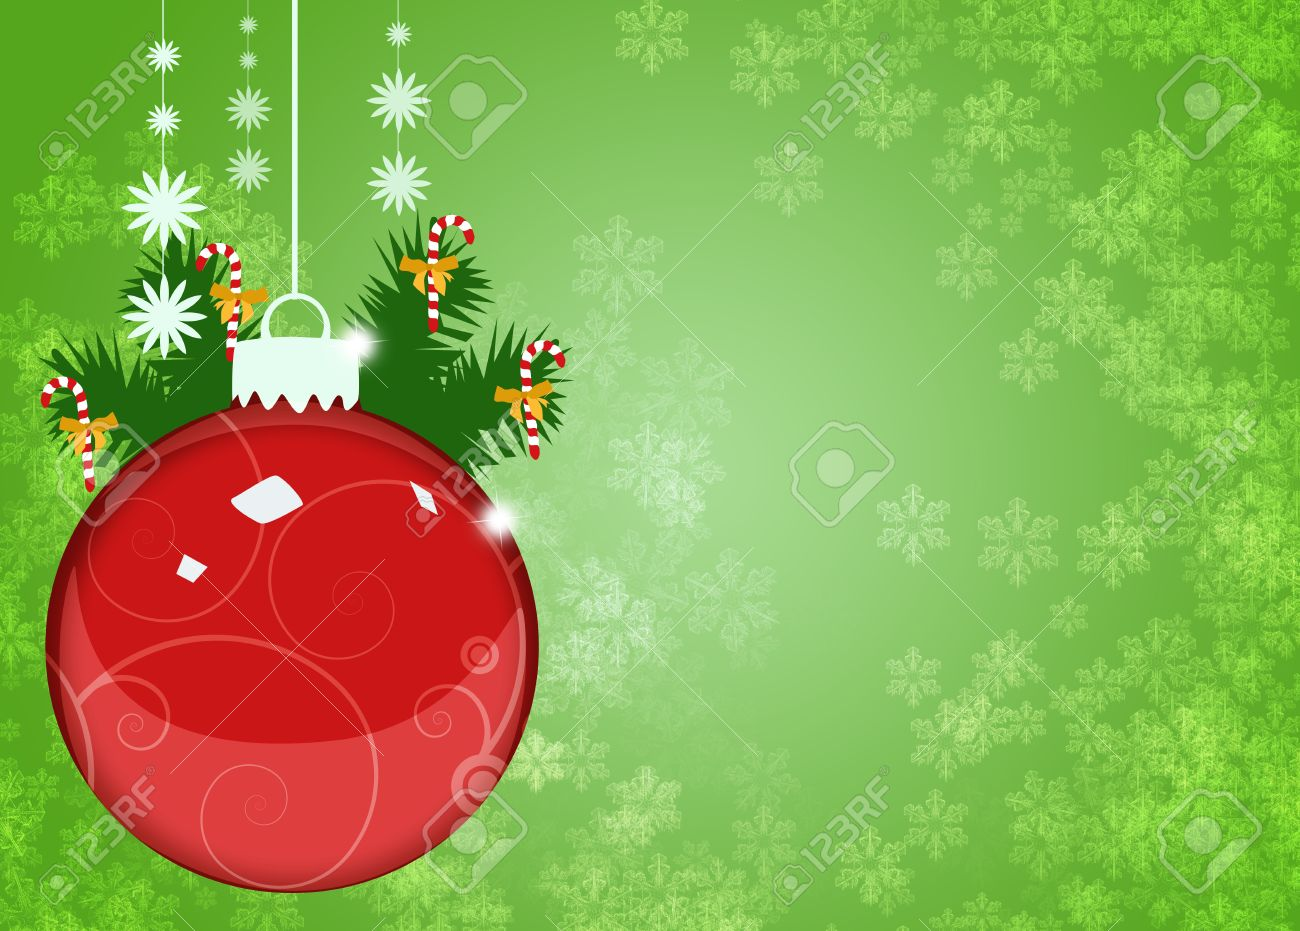 merry christmas decoration poster or flyer background space merry christmas decoration poster or flyer background space stock photo 23419486